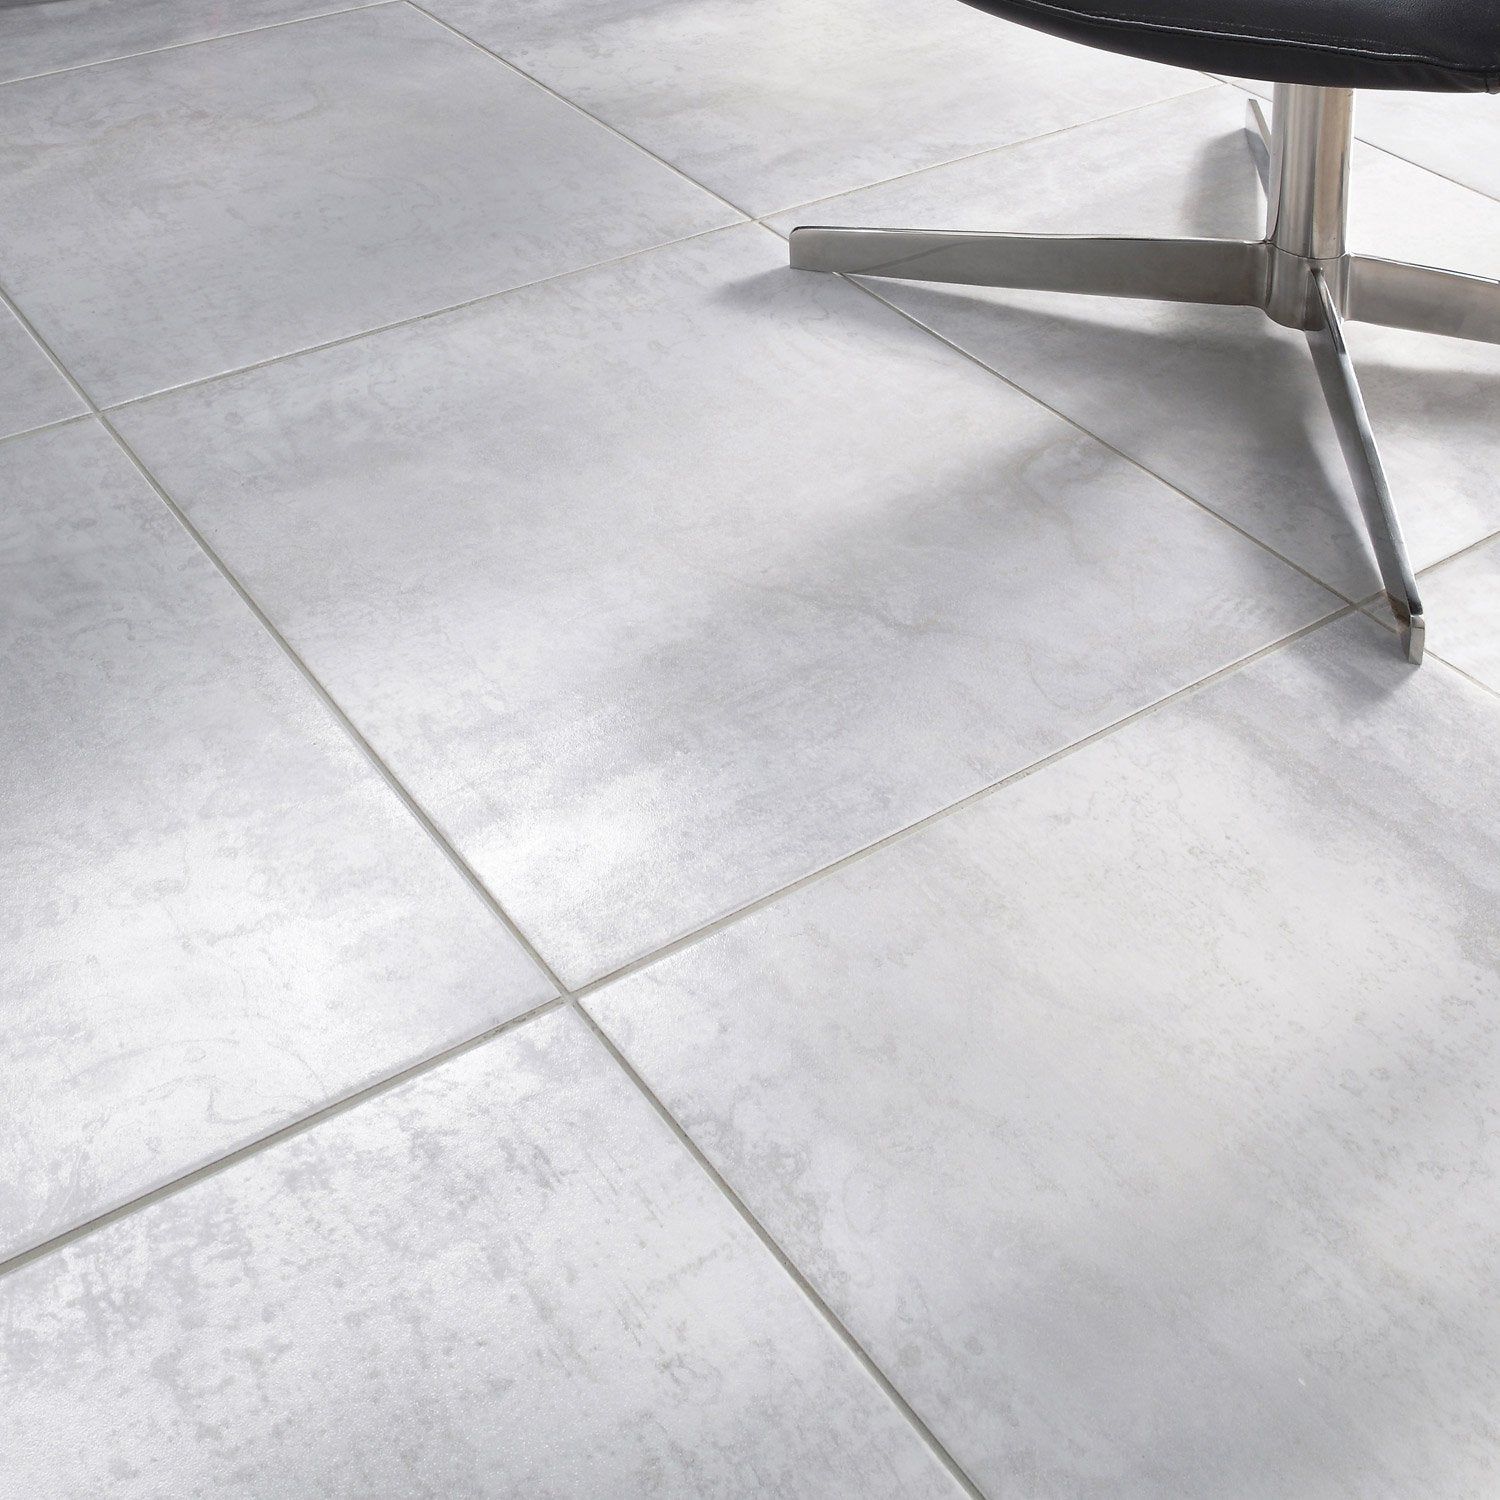 Carrelage 50x50 gris clair 28 images carrelage gris for Carrelage 50x50 gris clair